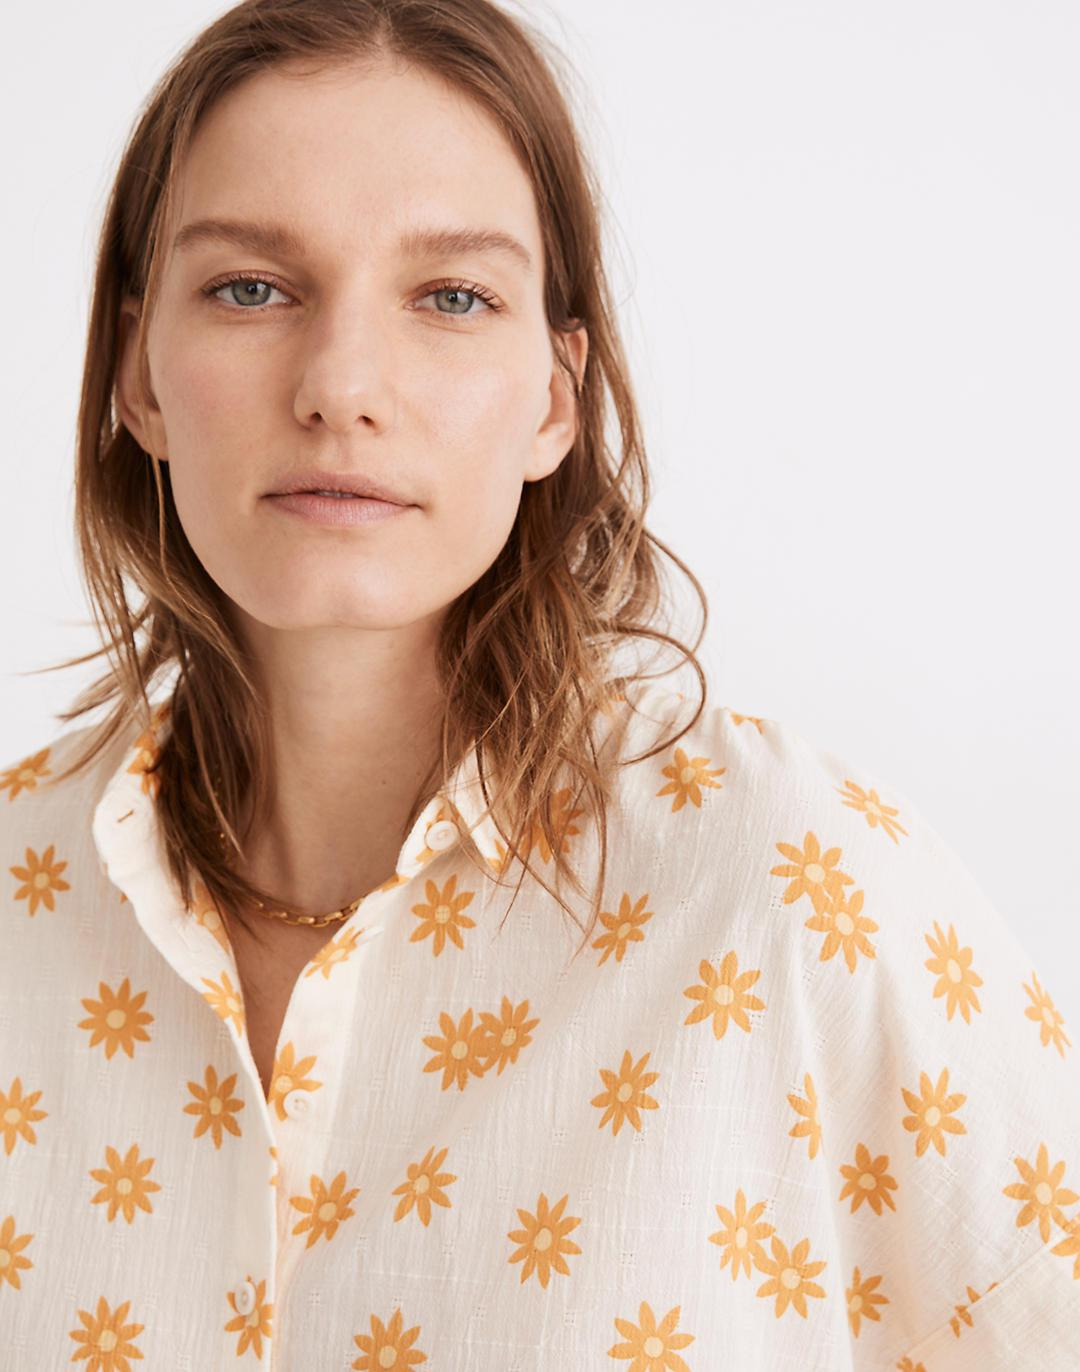 Hilltop Shirt in Daisy Groove 1